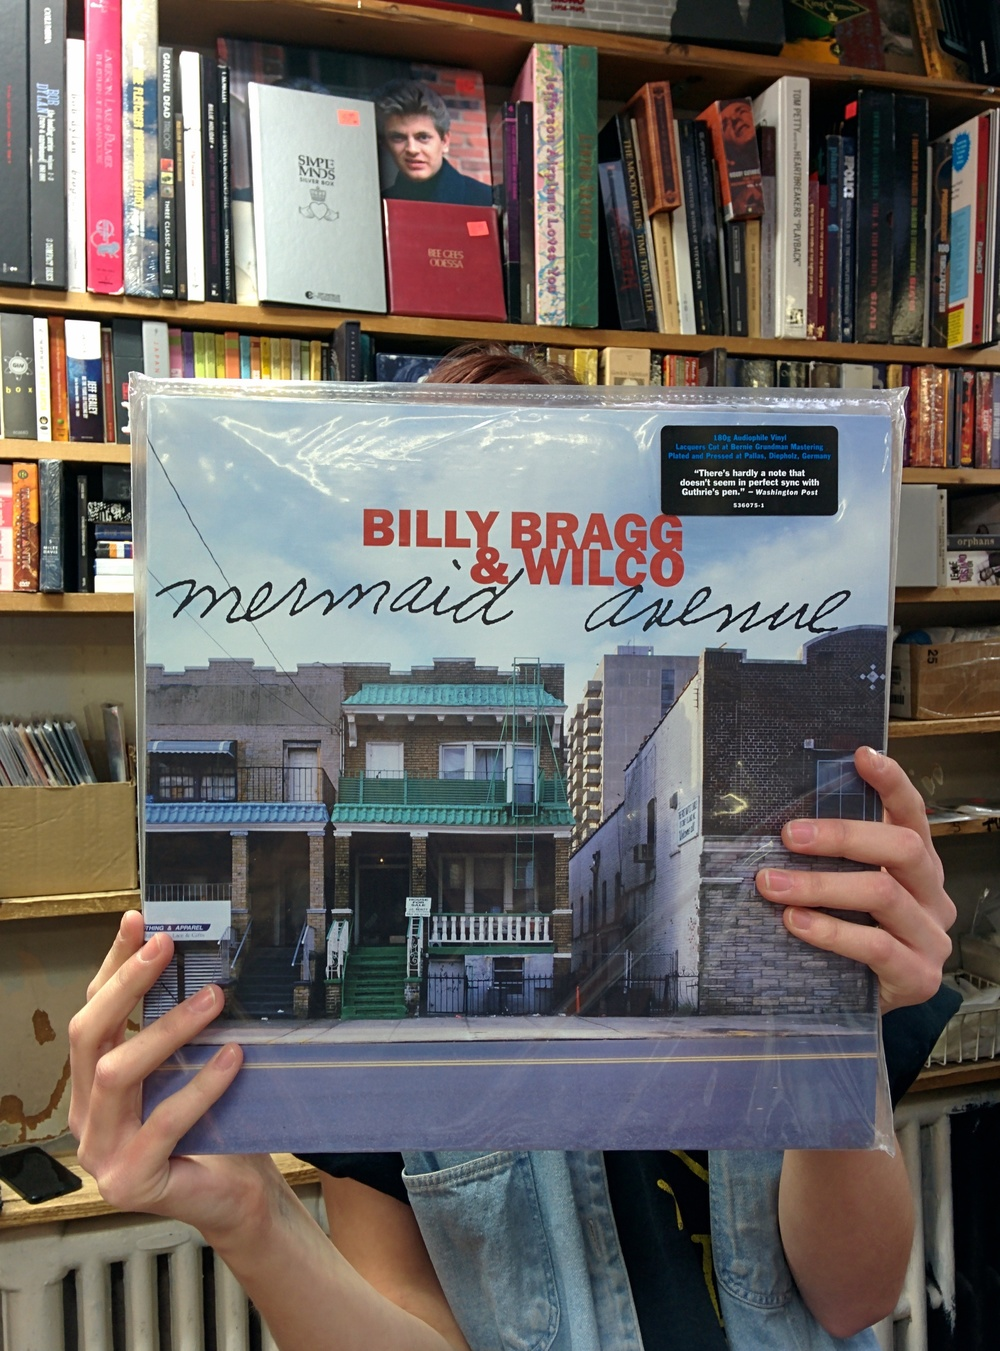 Billy Bragg & Wilco - $39.99